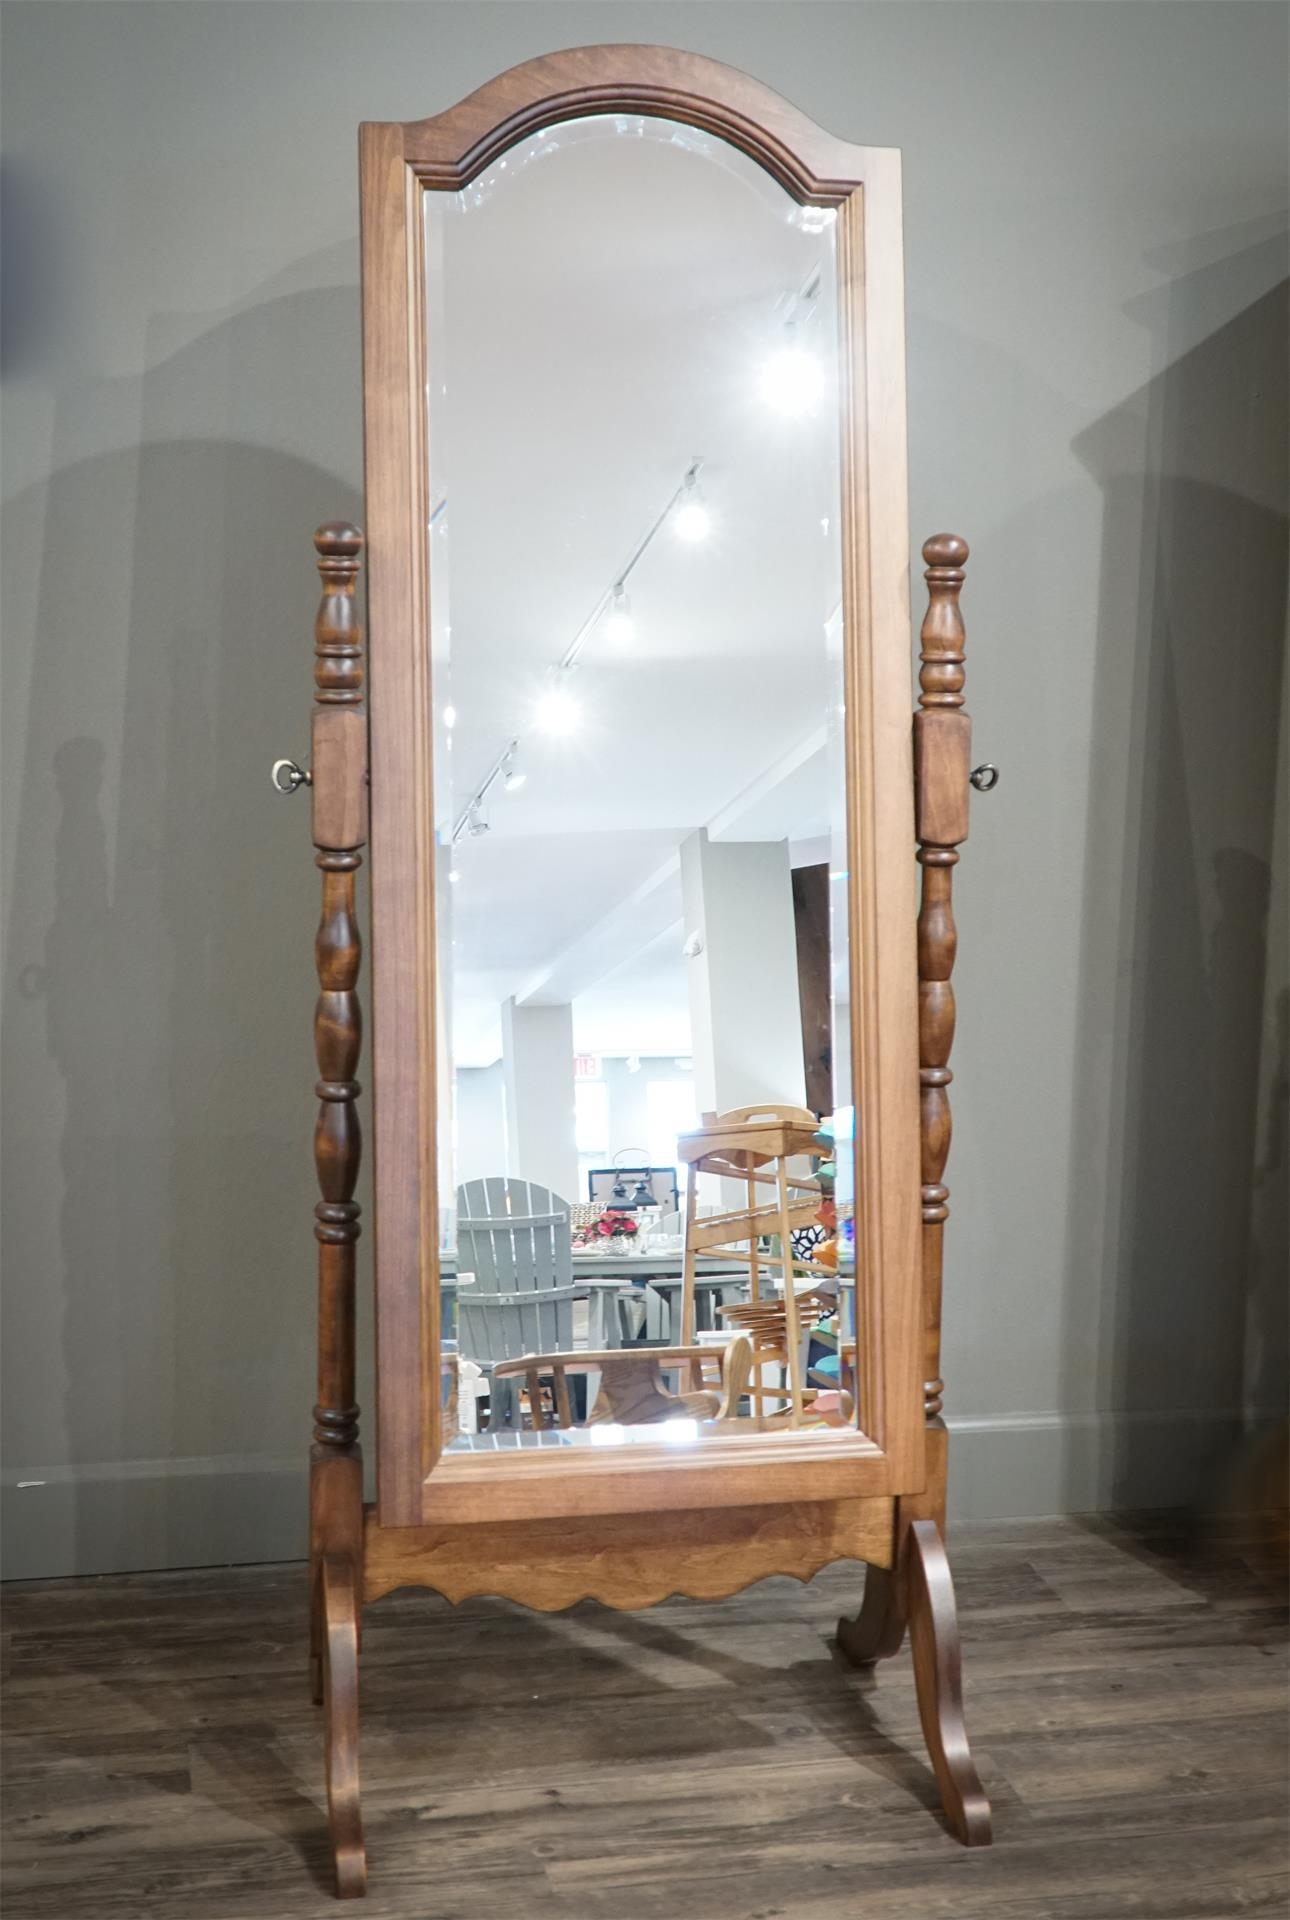 Amish Full Length Victorian Style Floor Mirror With Regard To Victorian Full Length Mirror (Image 1 of 20)